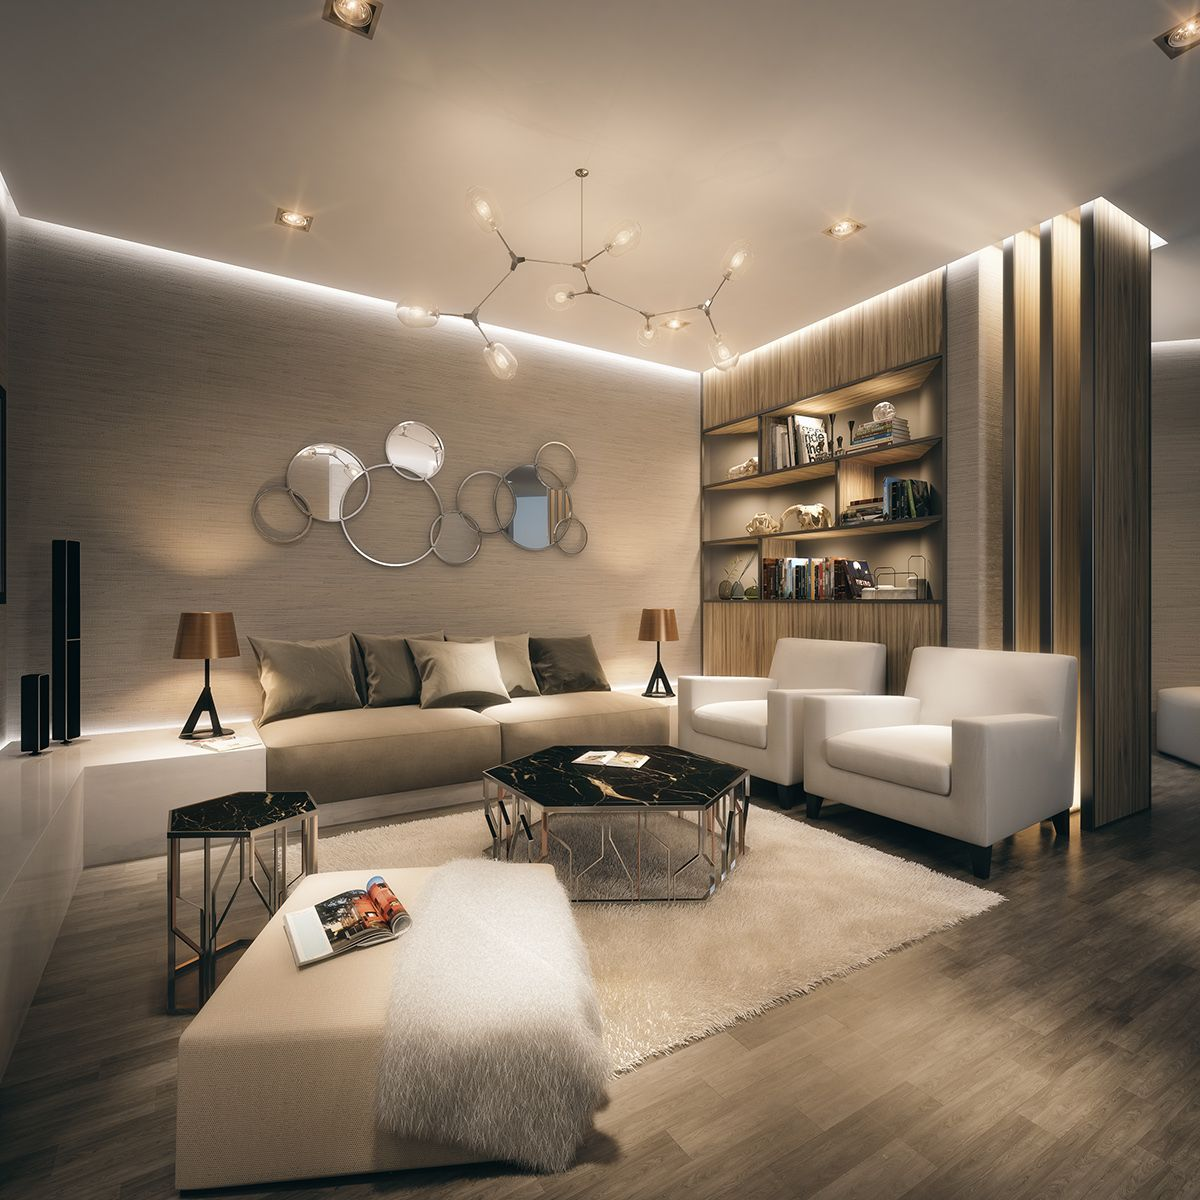 Luxury Homes Interior Decoration Living Room Designs Ideas: Private Luxury Apartments Complex In Western Africa. Full